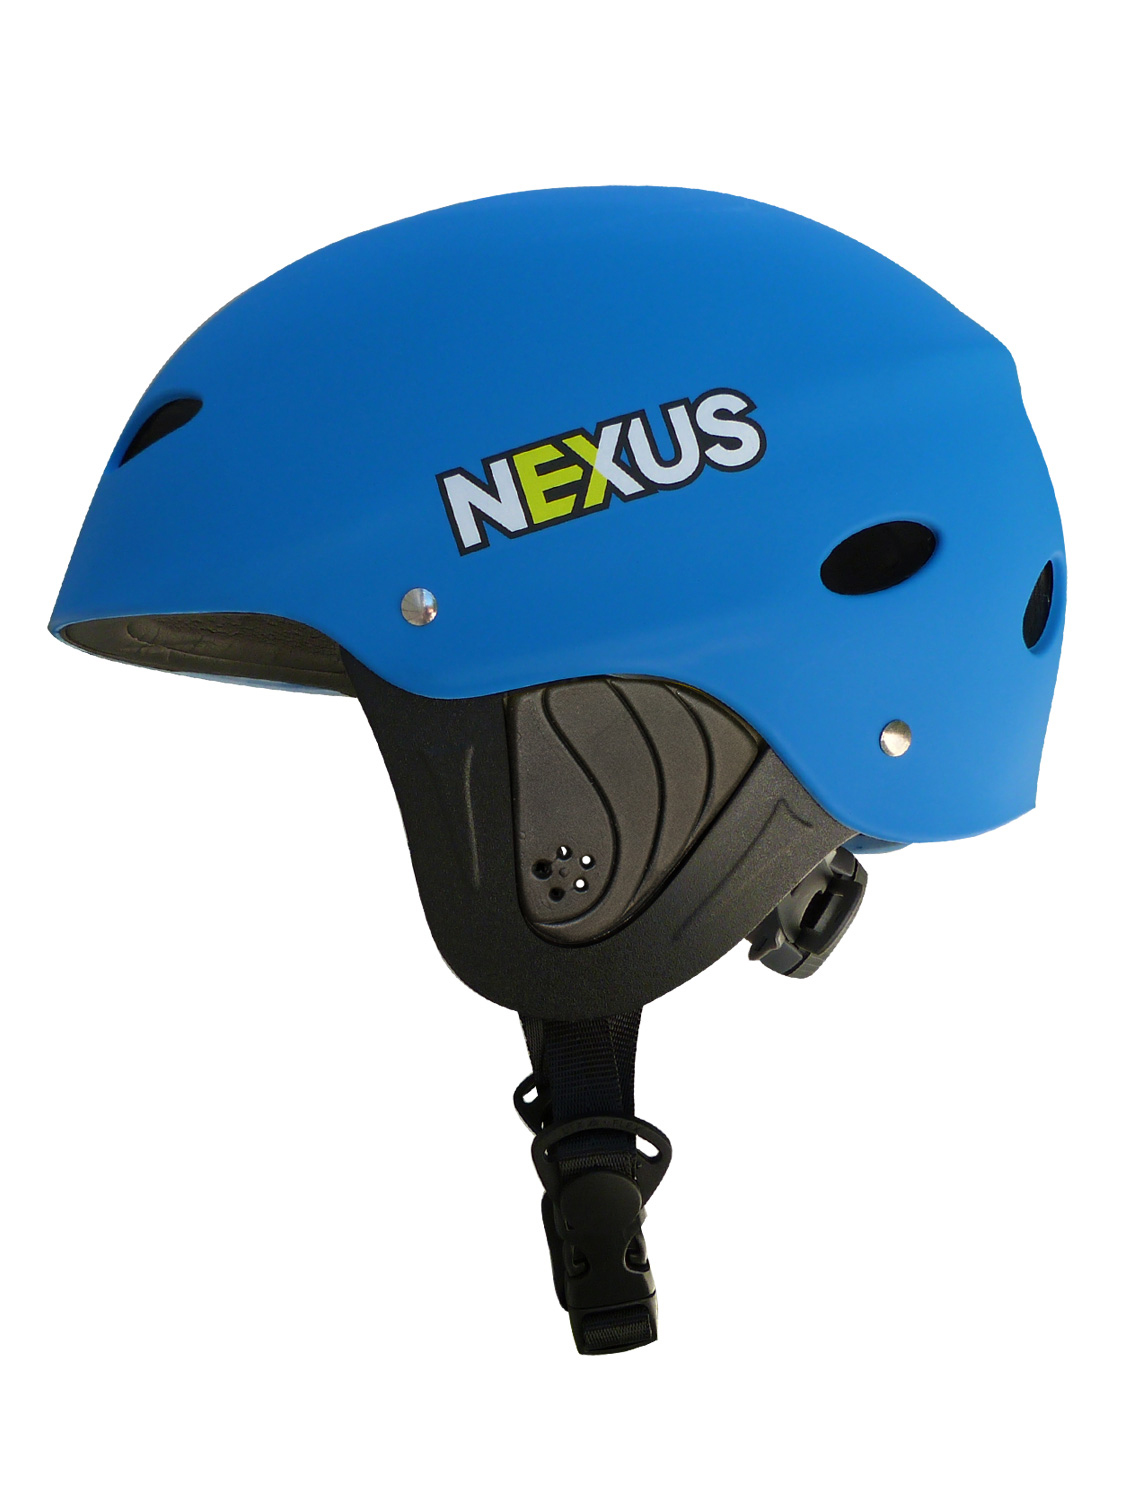 Nexus-Watersport-Safety-Helmet-Canoe-Kayak-Board-Kids-Child-Adult